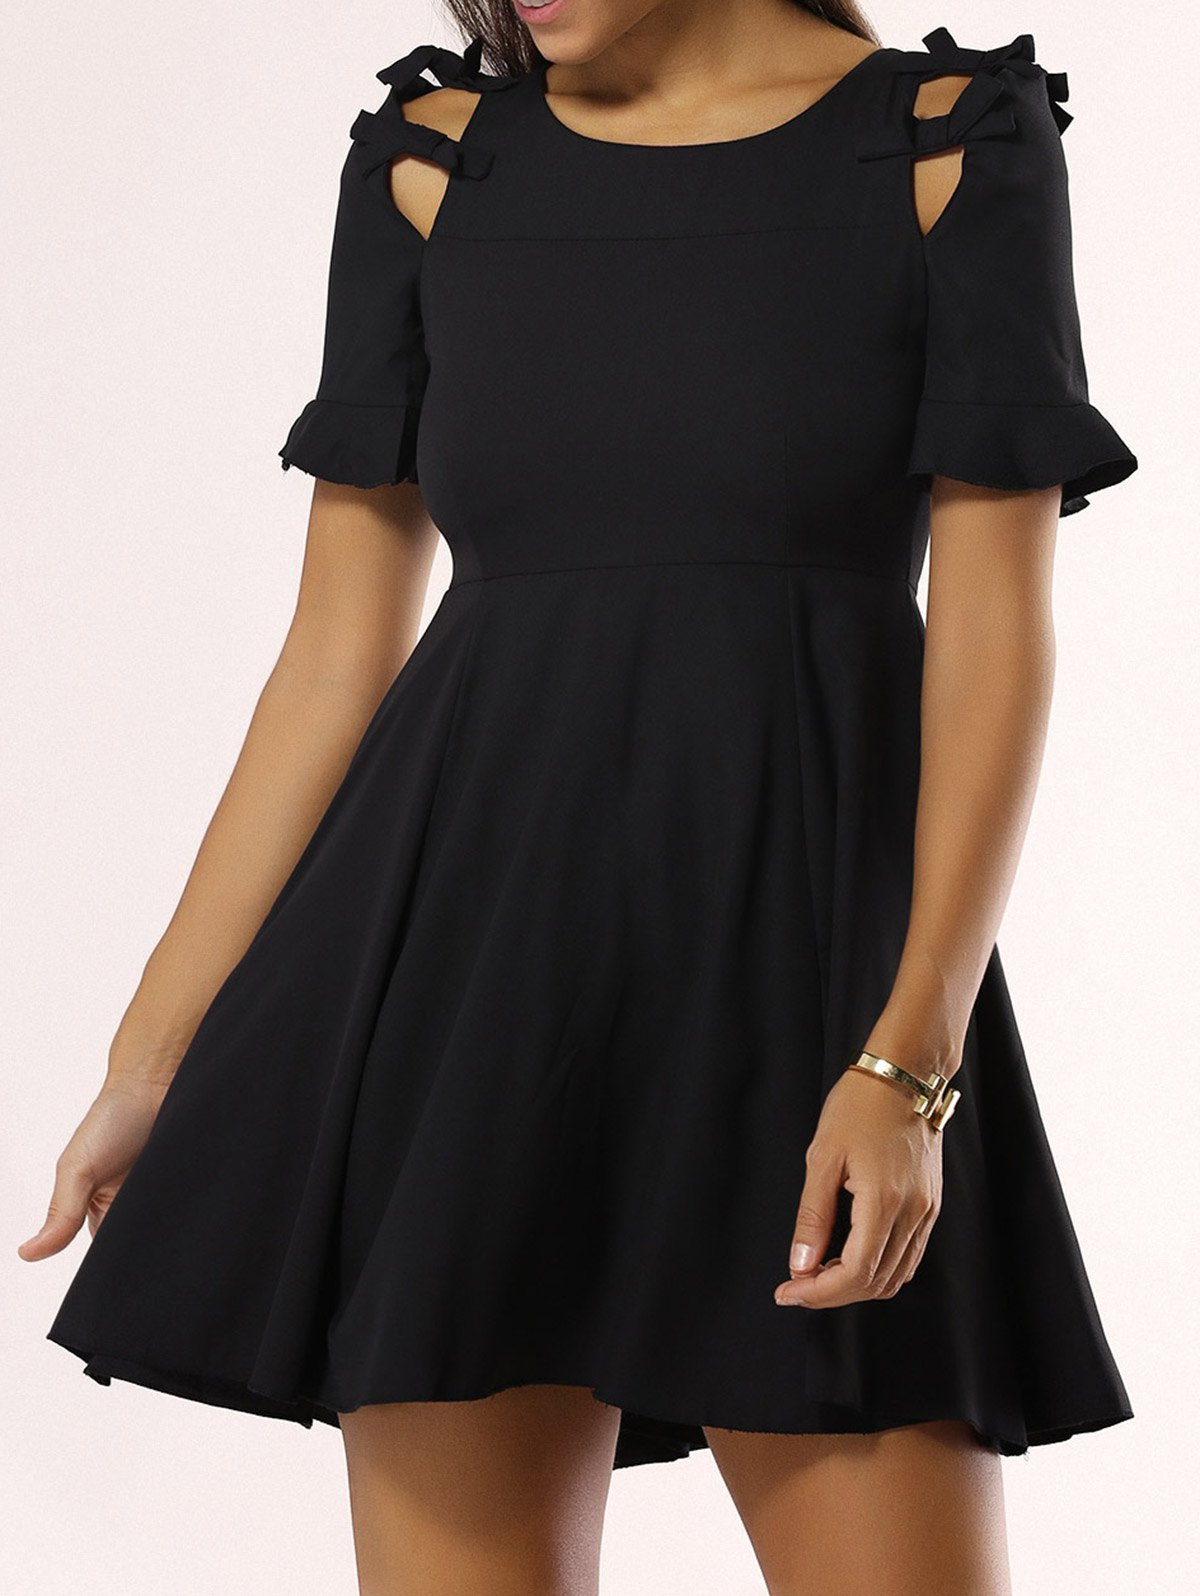 Stunning Bowknot Hollow Out Dress For Women